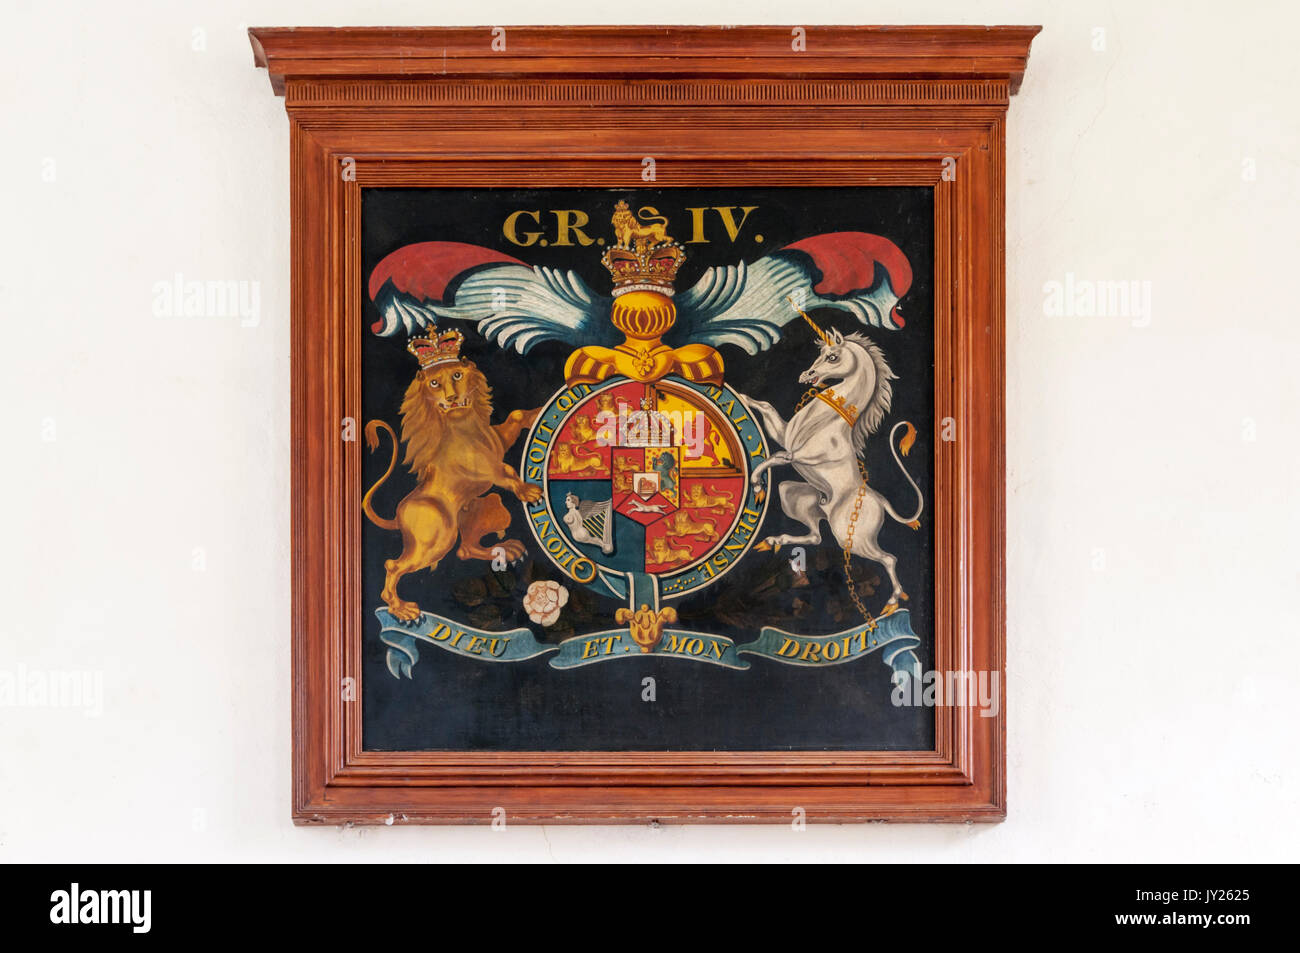 The Royal Arms of George IV on the west wall of St Mary's church,East Guldeford on Romney Marsh. - Stock Image